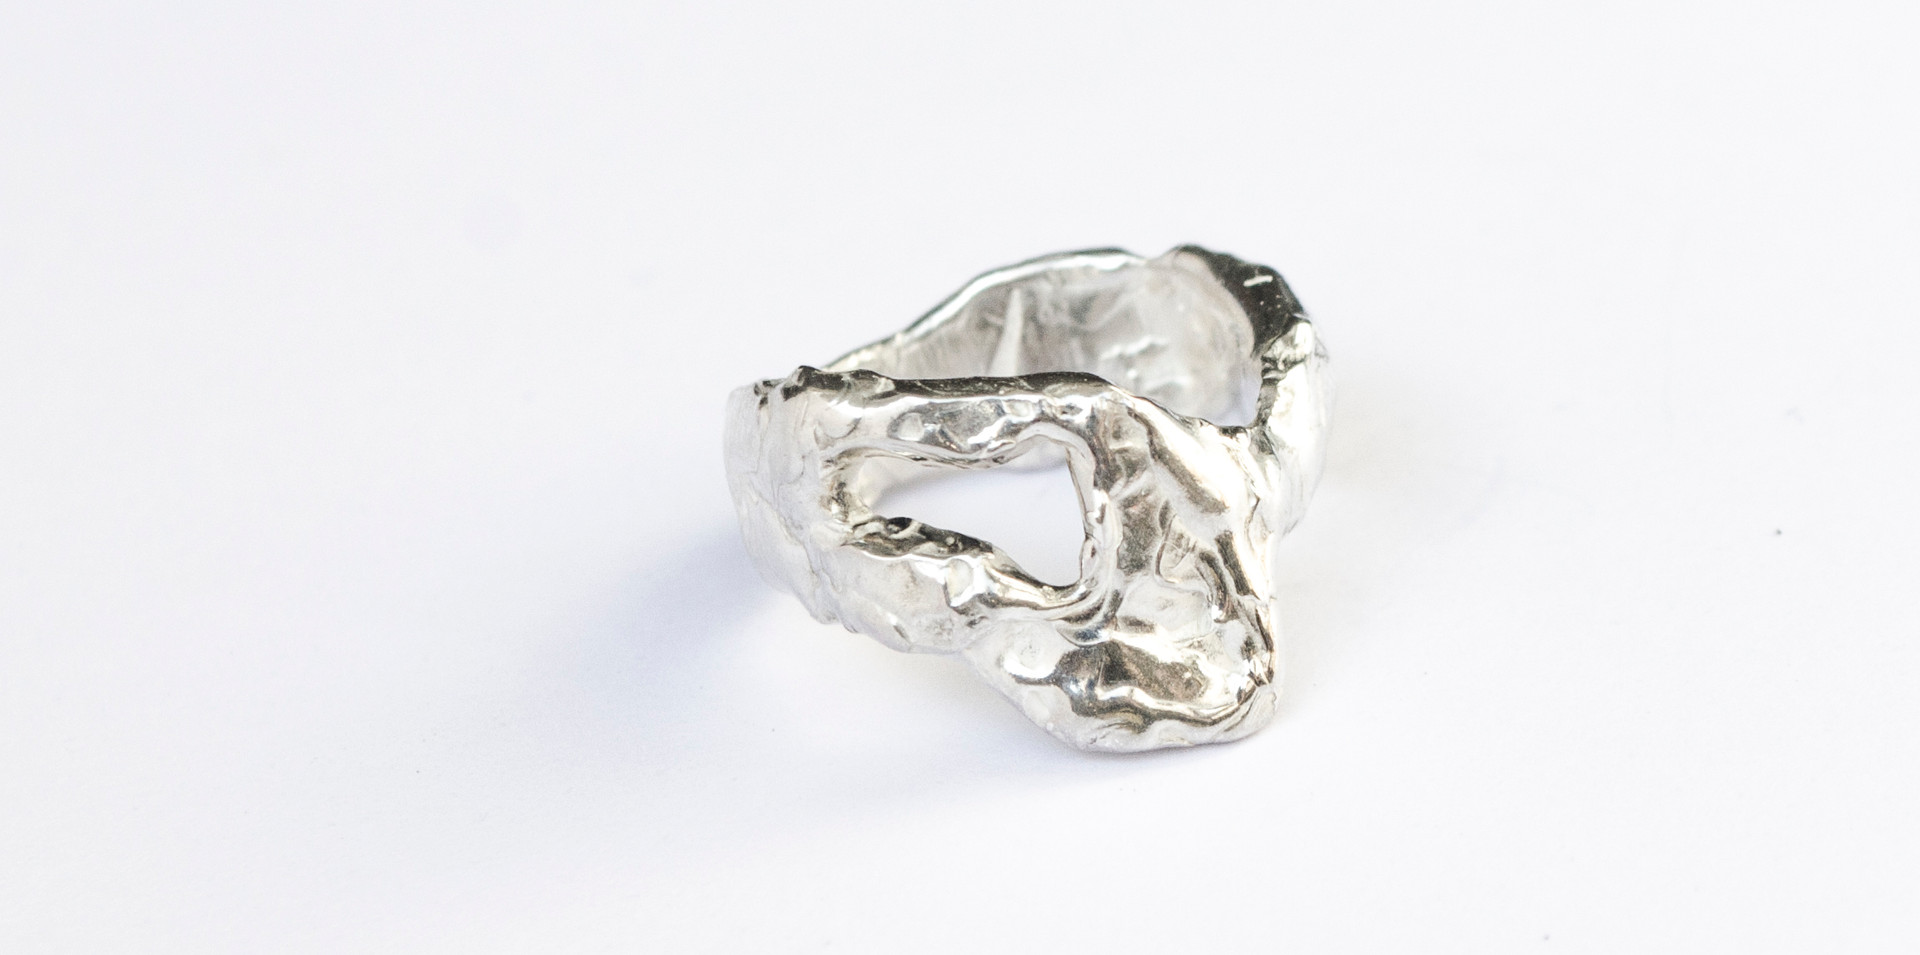 Fluid silver No.2 (available)